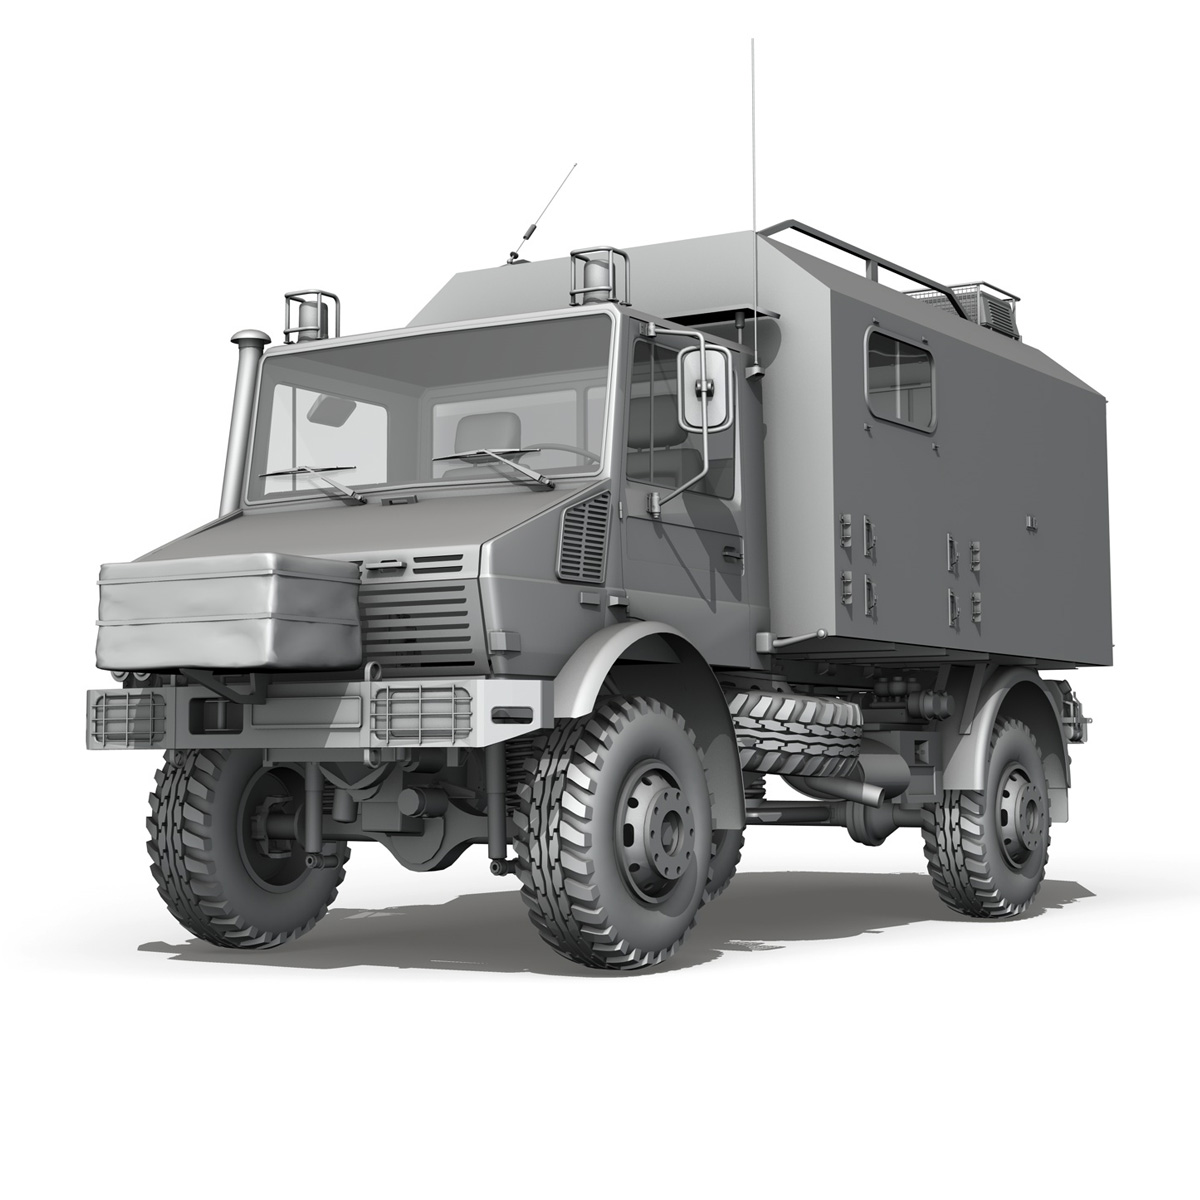 mercedes benz unimog u1300l ambulance 3d model 3ds fbx c4d lwo obj 189535